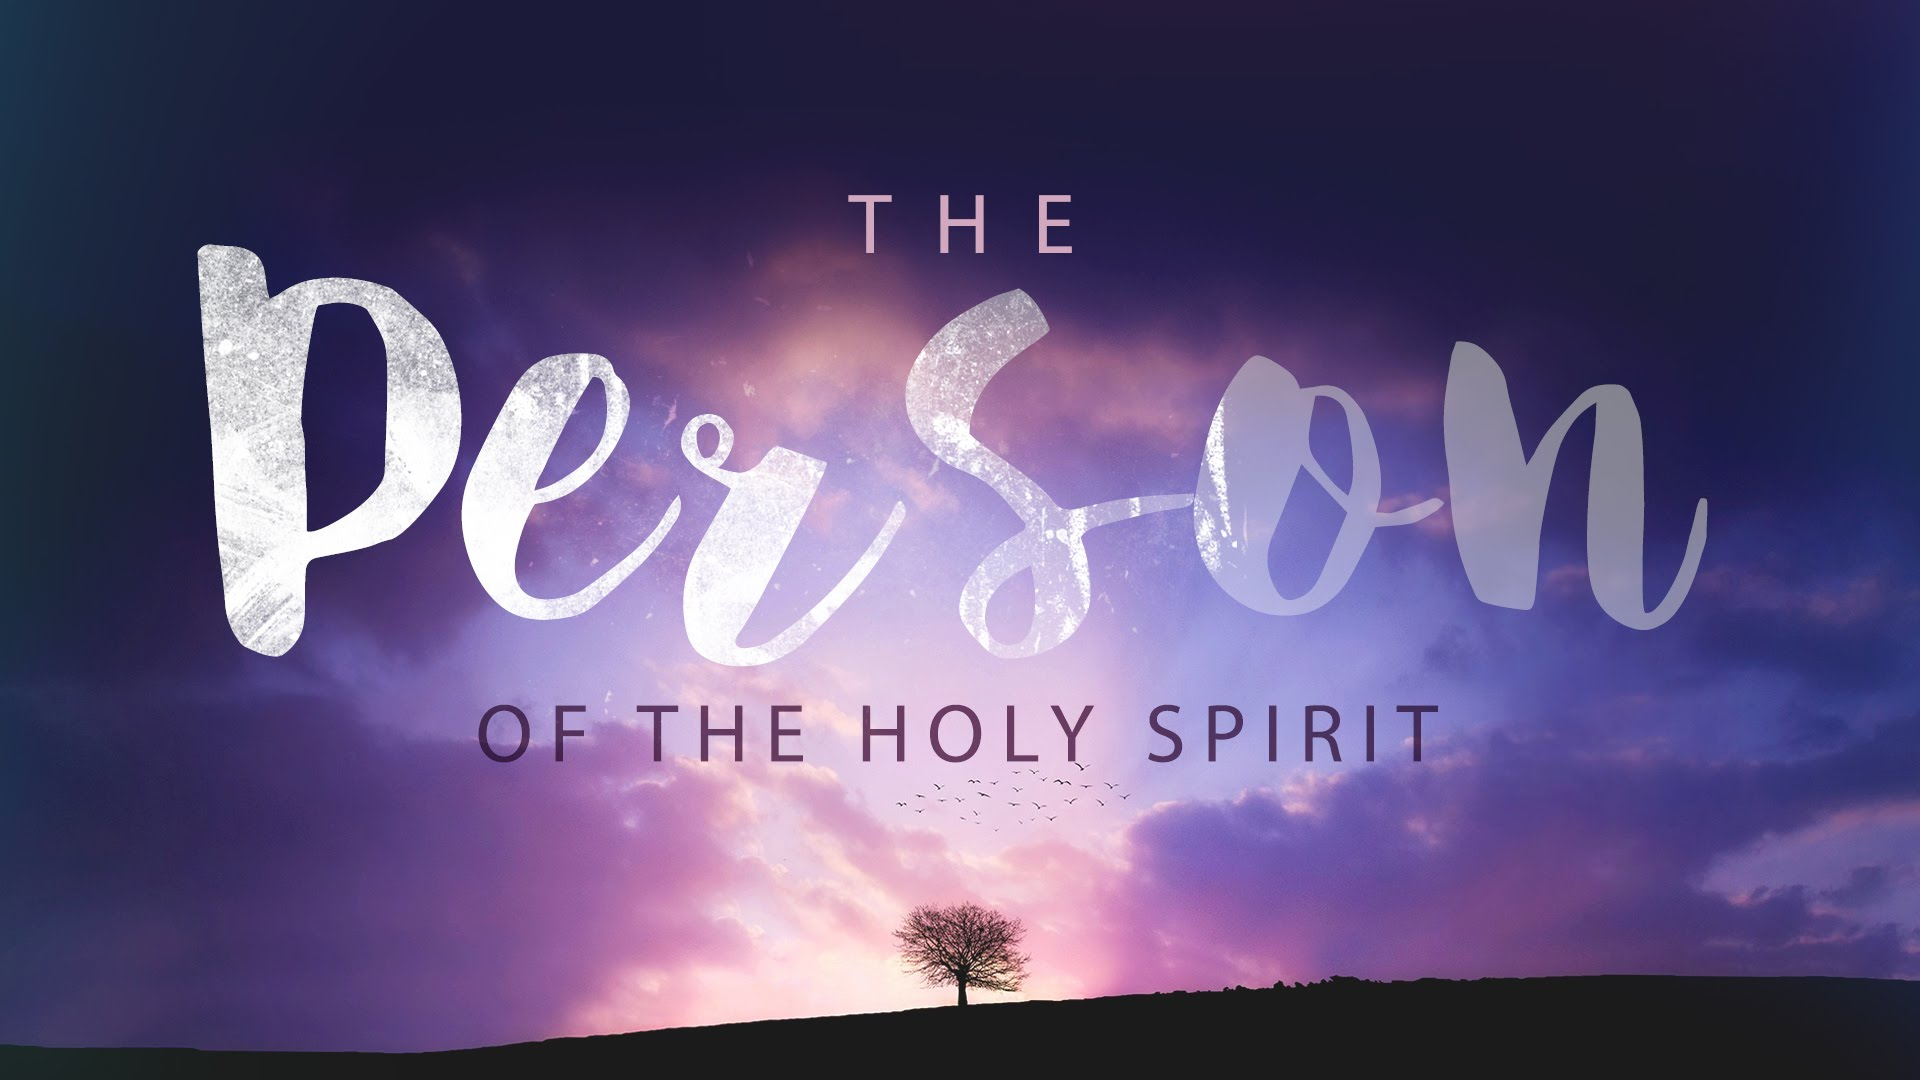 person of the holy spirit